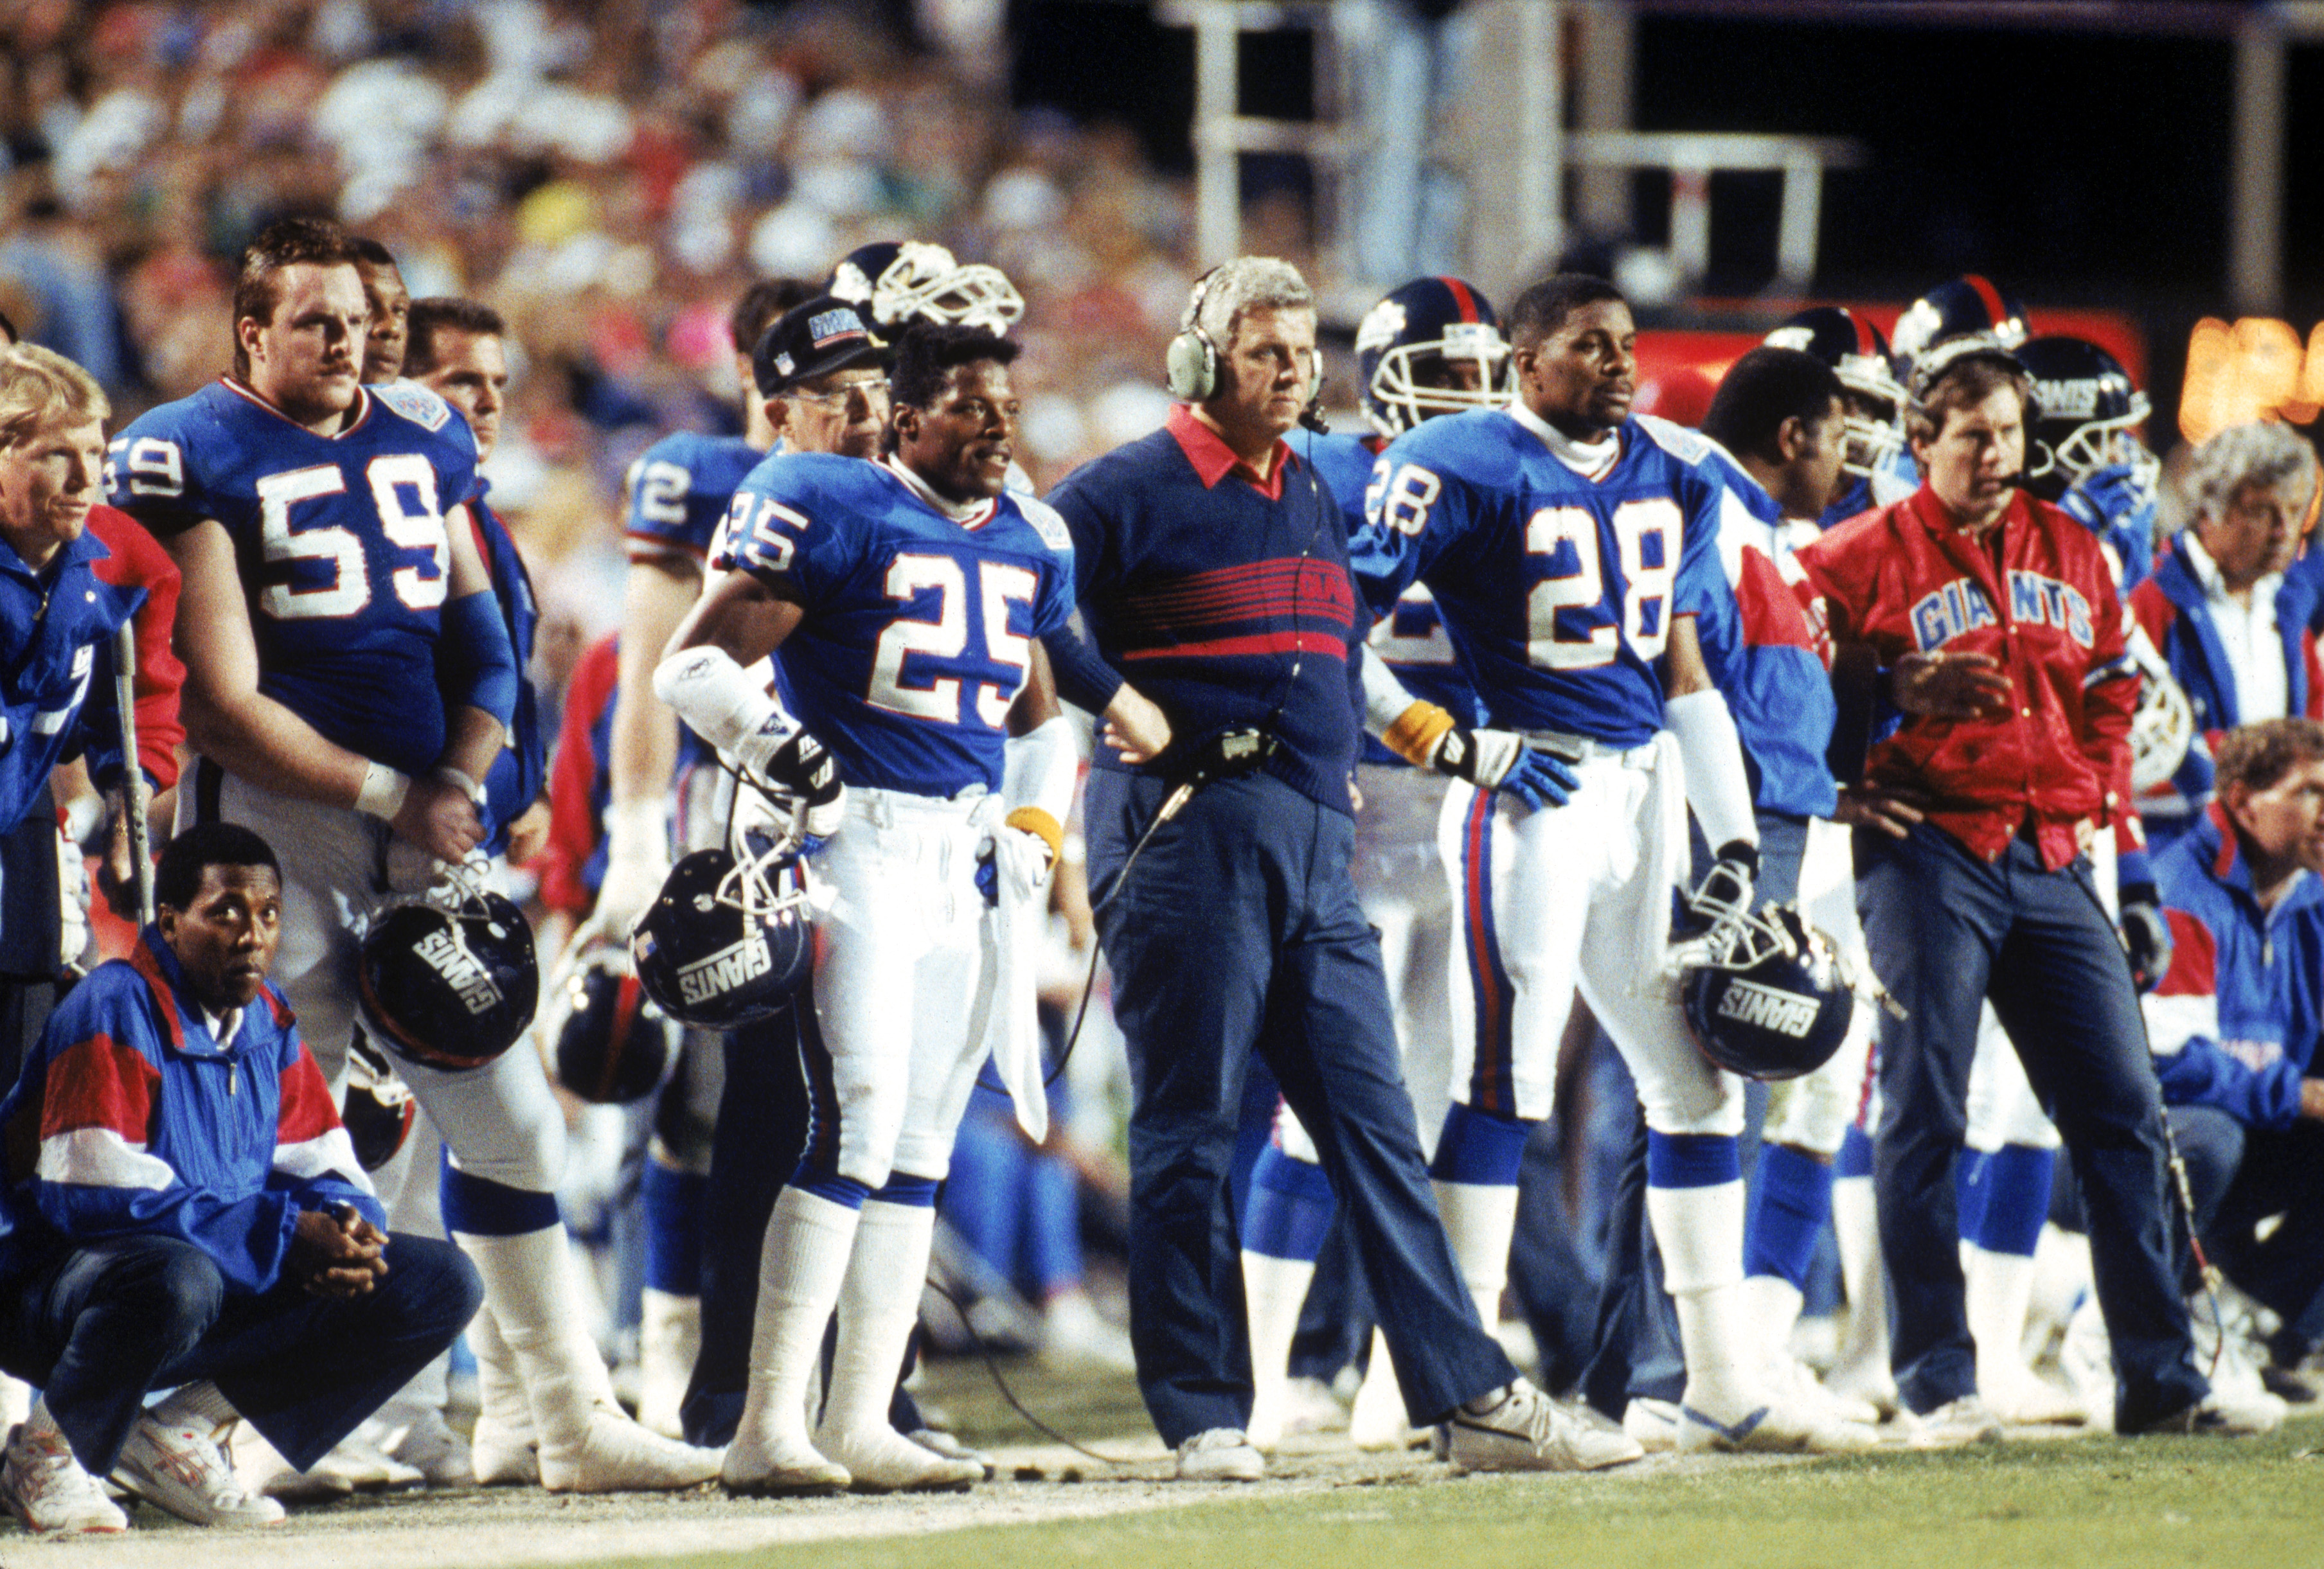 TAMPA, FL - JANUARY 27:  Cornerback Mark Collins #25, head coach Bill Parcells, cornerback Everson Walls #28 and assistant coach Bill Belichick of the New York Giants stand on the sideline against the Buffalo Bills during Super Bowl XXV at Tampa Stadium o